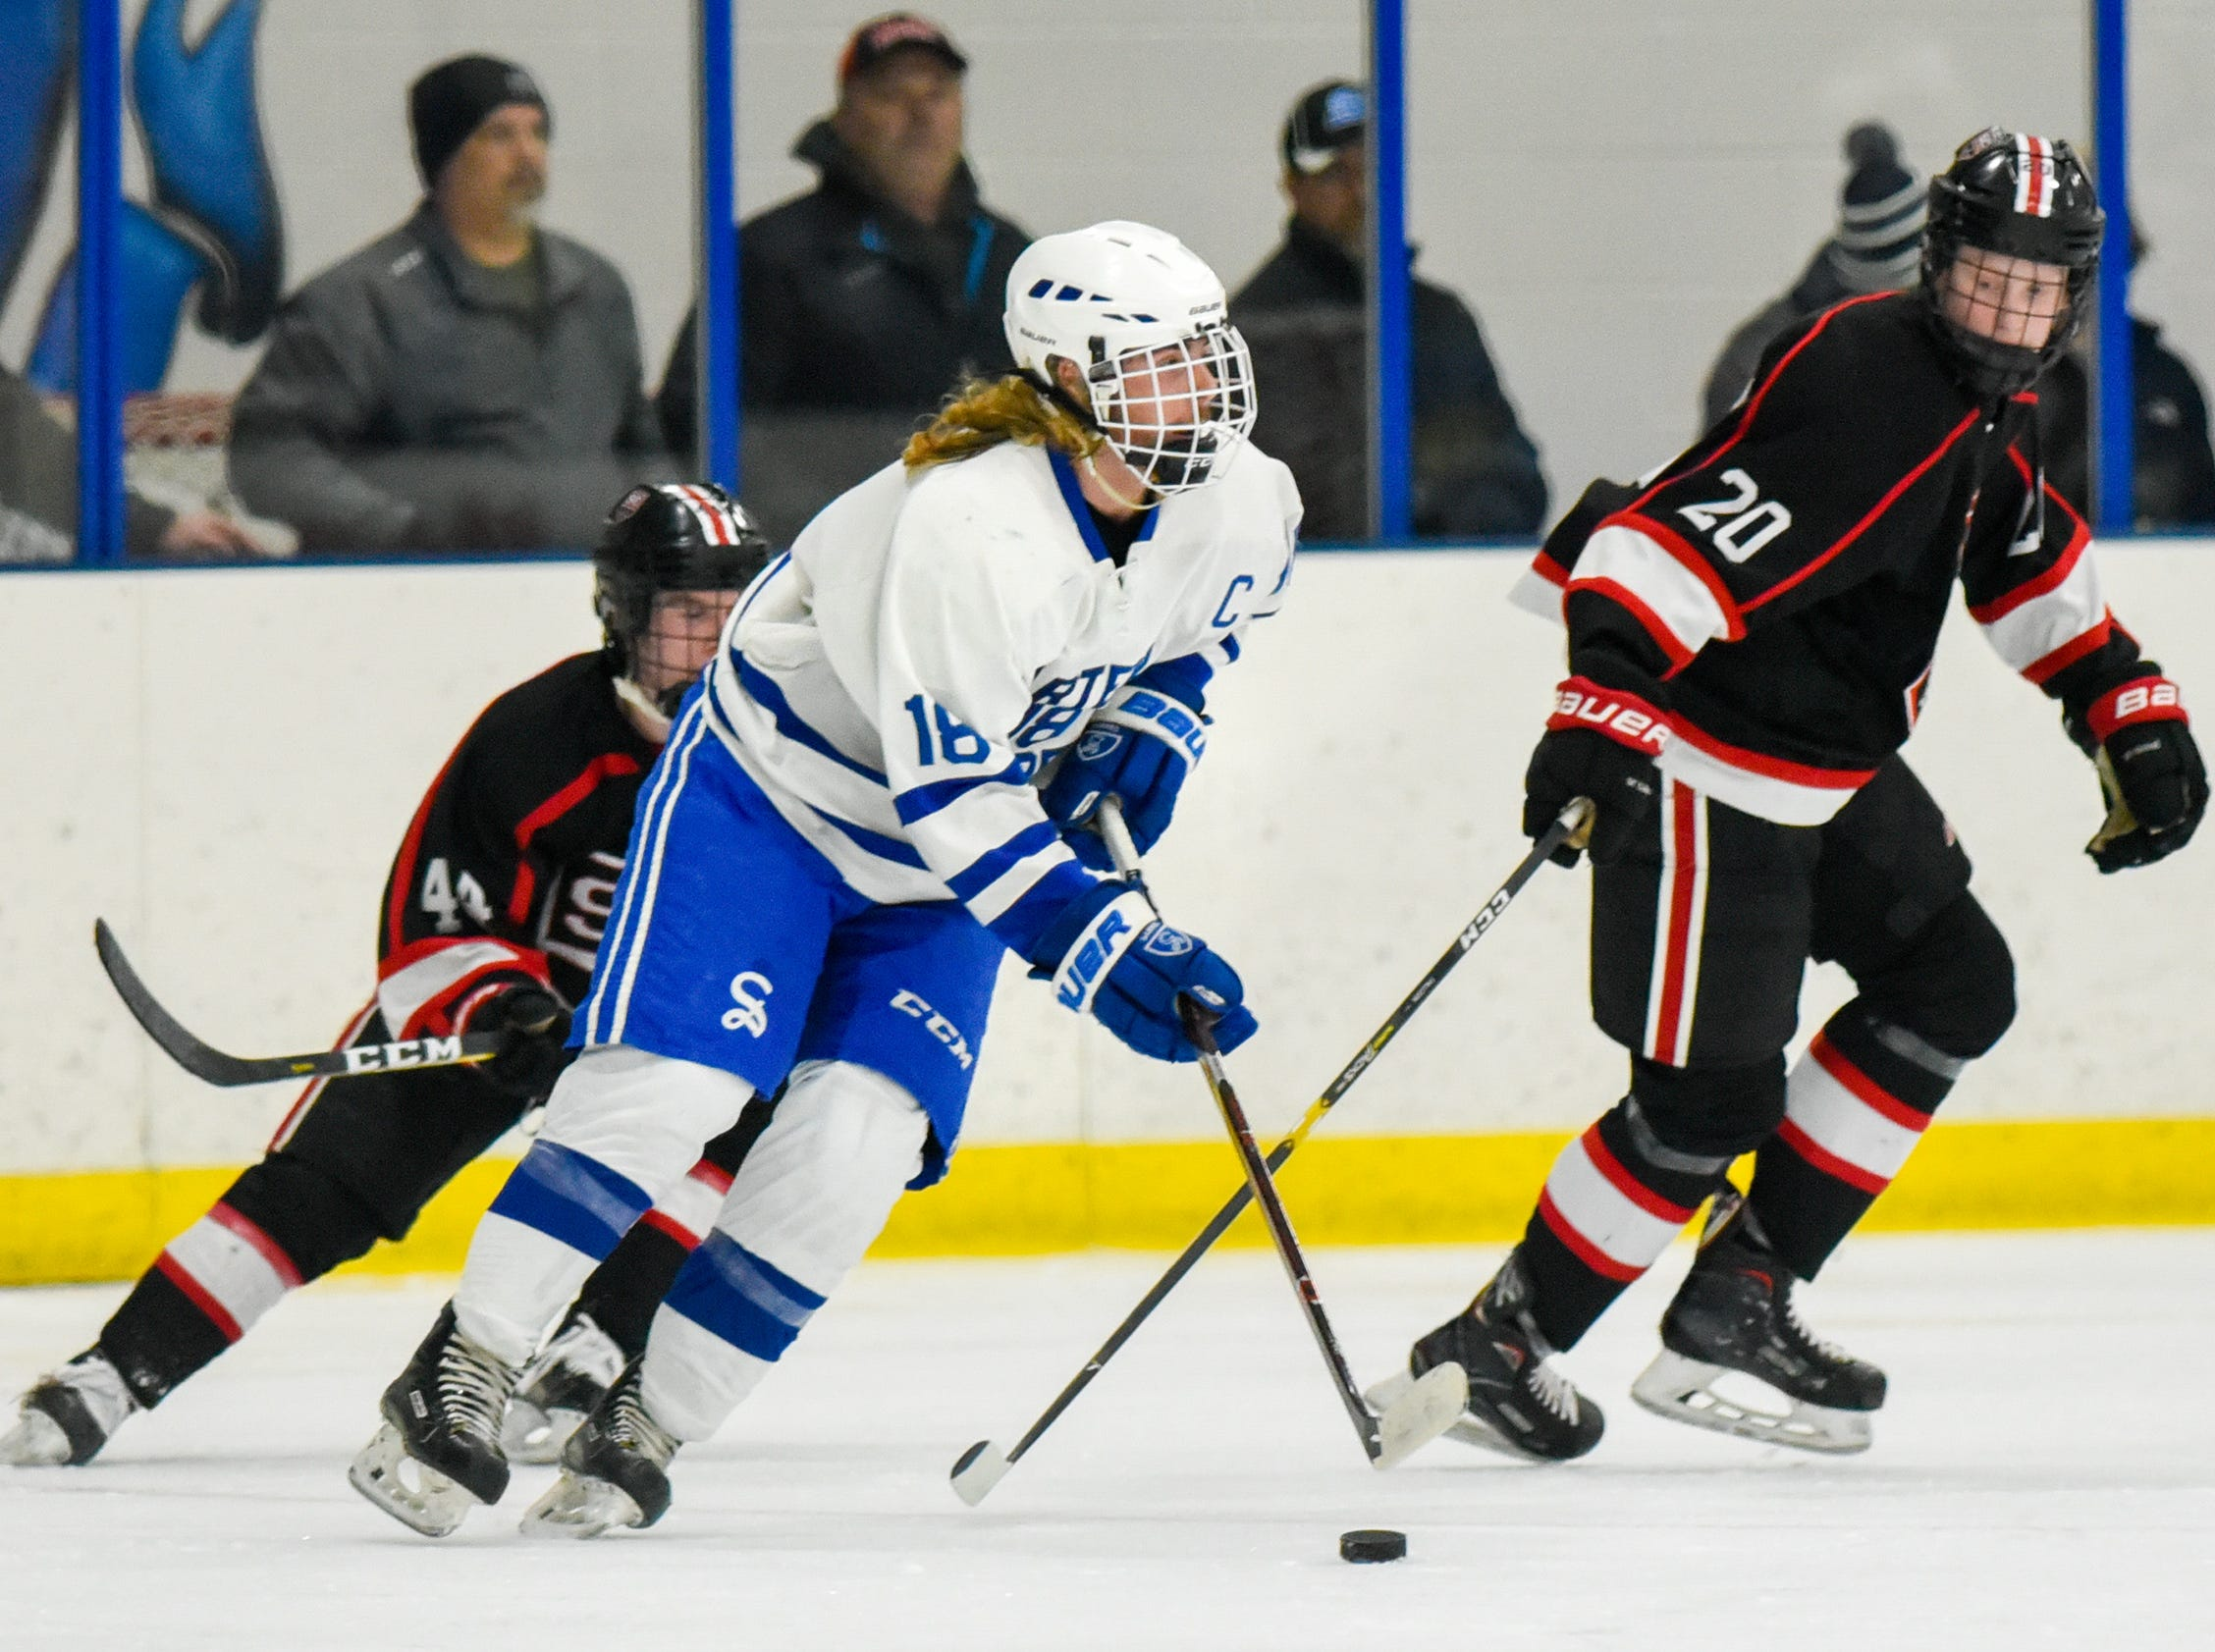 Sartell's Jack Hennemann skates with the puck against St. Cloud during the second period Tuesday, Dec. 18, at the Bernick's Arena in Sartell. The Sabres beat St. Cloud, 3-1.